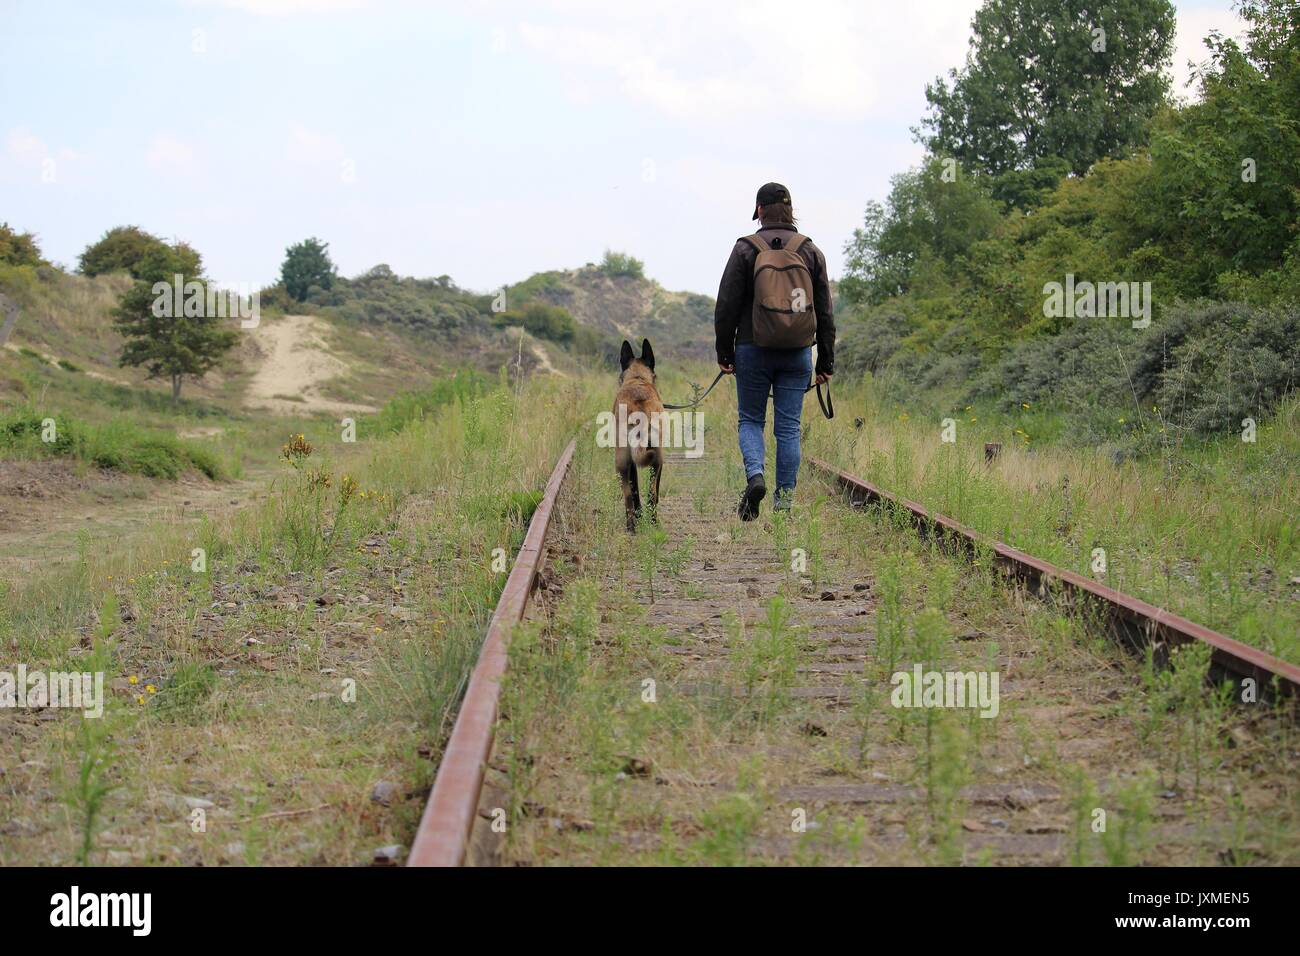 Travel between master and dog along the old rails - Stock Image